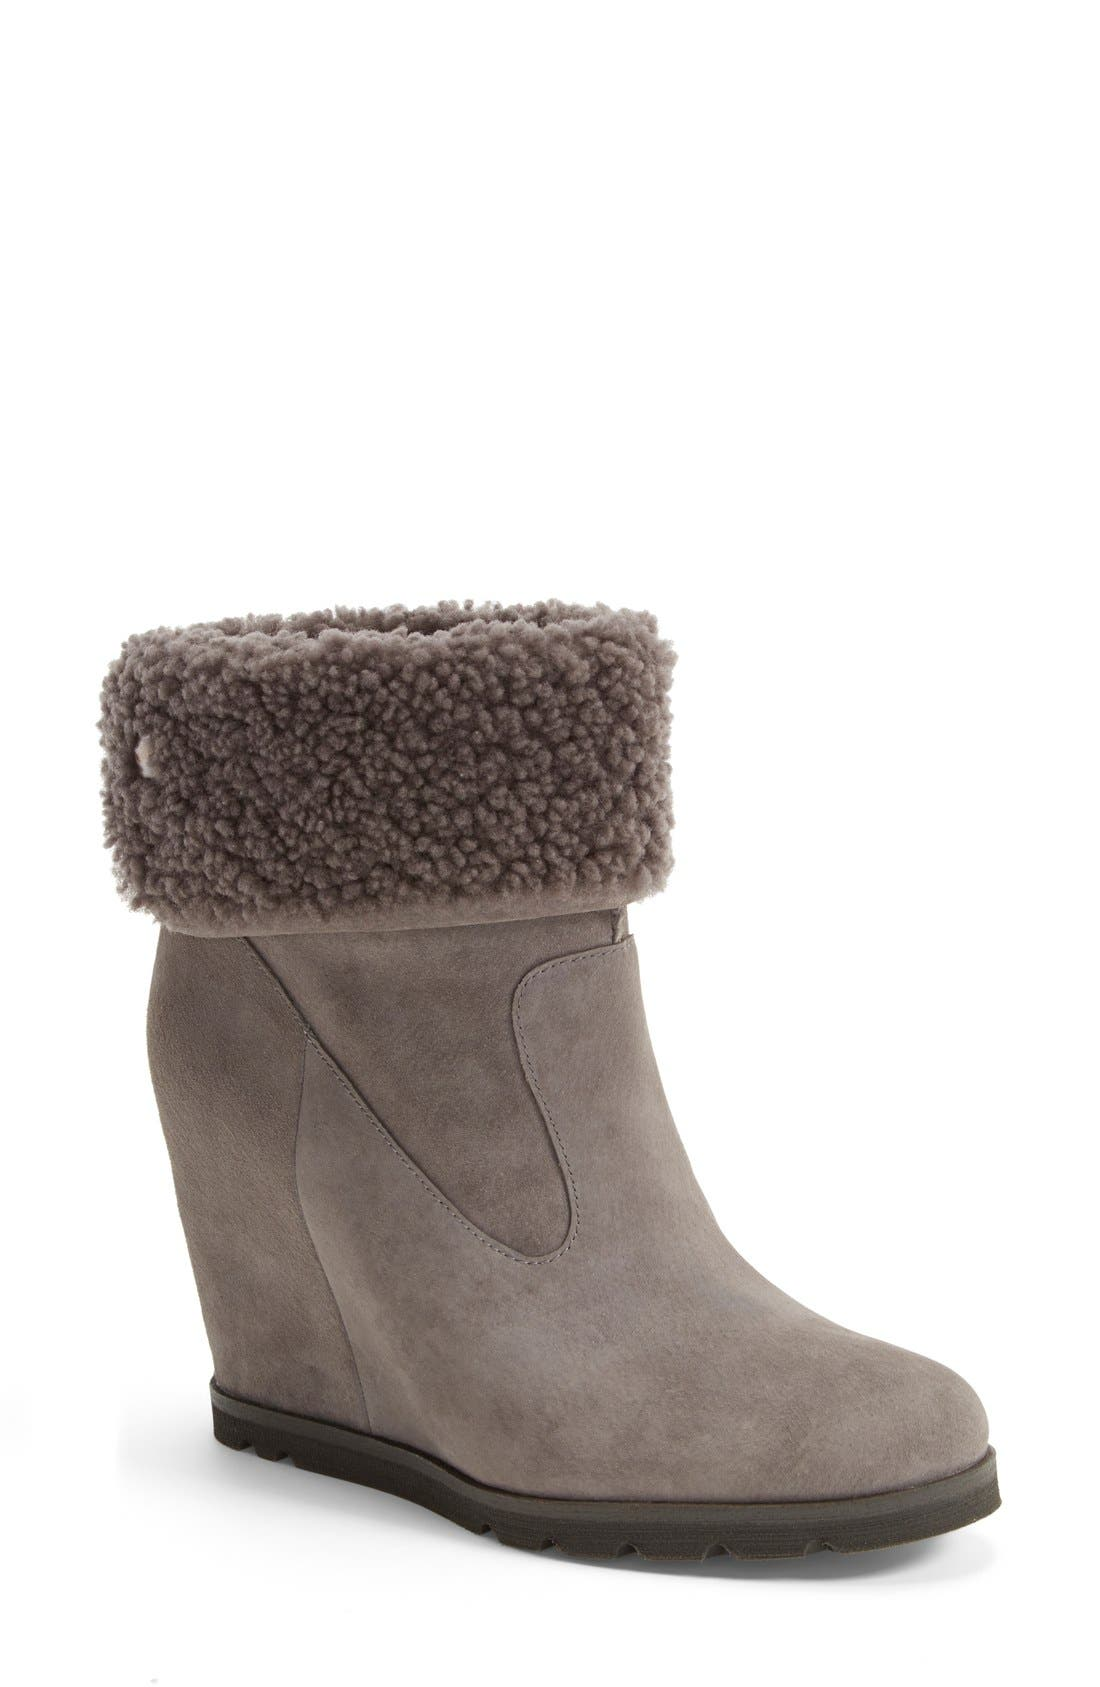 ugg kyra boots review